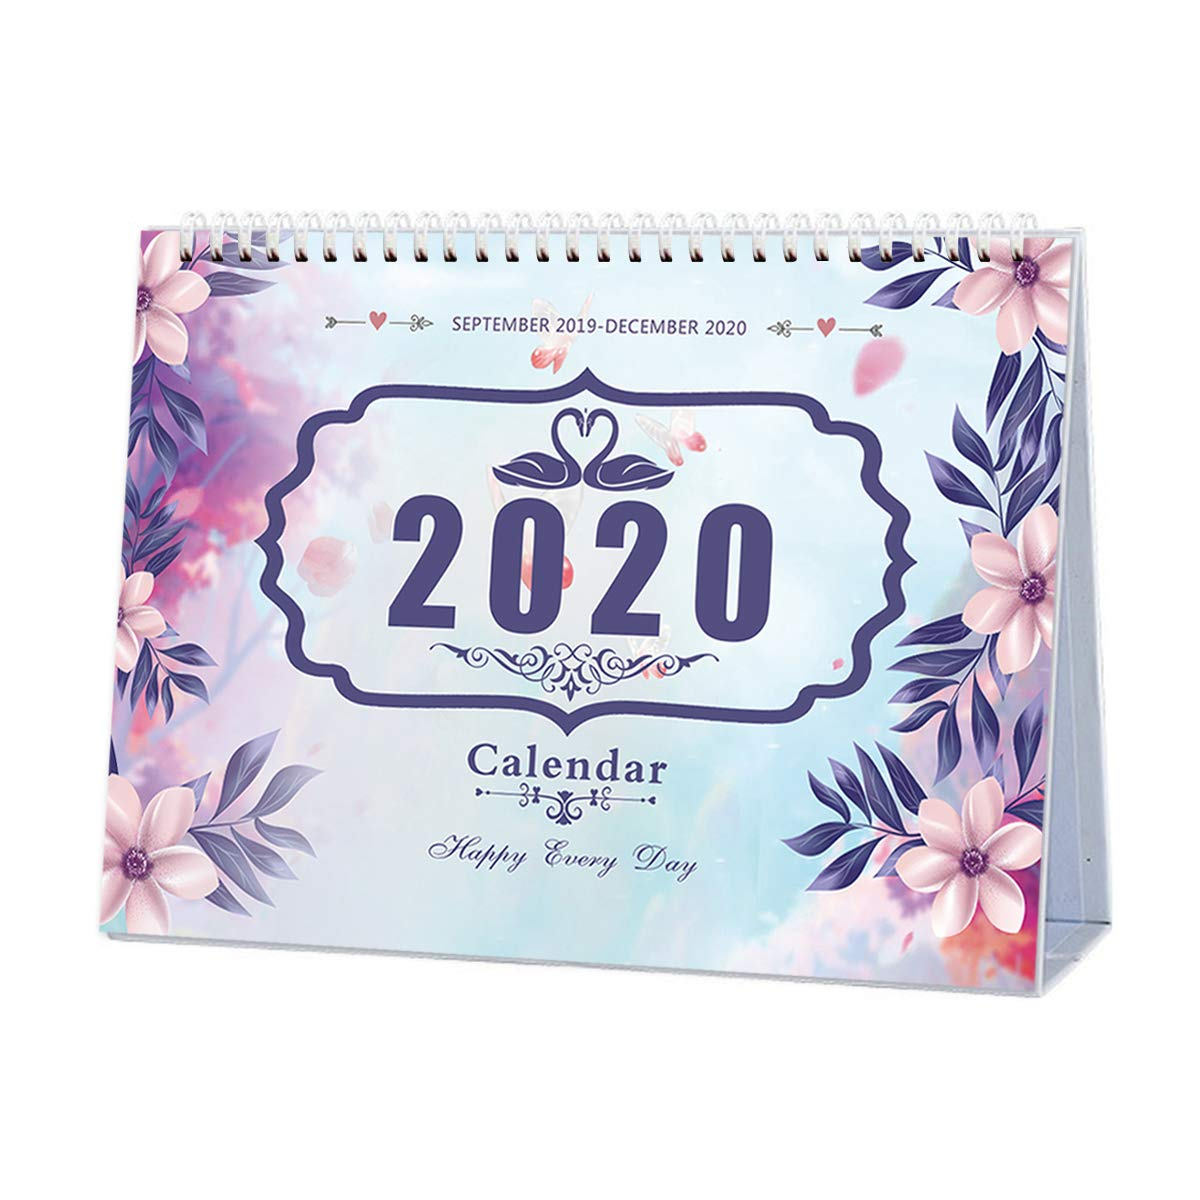 Office Monthly American Holiday Twin Wire Home Daily Planner Desktop Calendar Academic Year Planner for School 2020 Desk Pad Calendar December 2020 September 2019